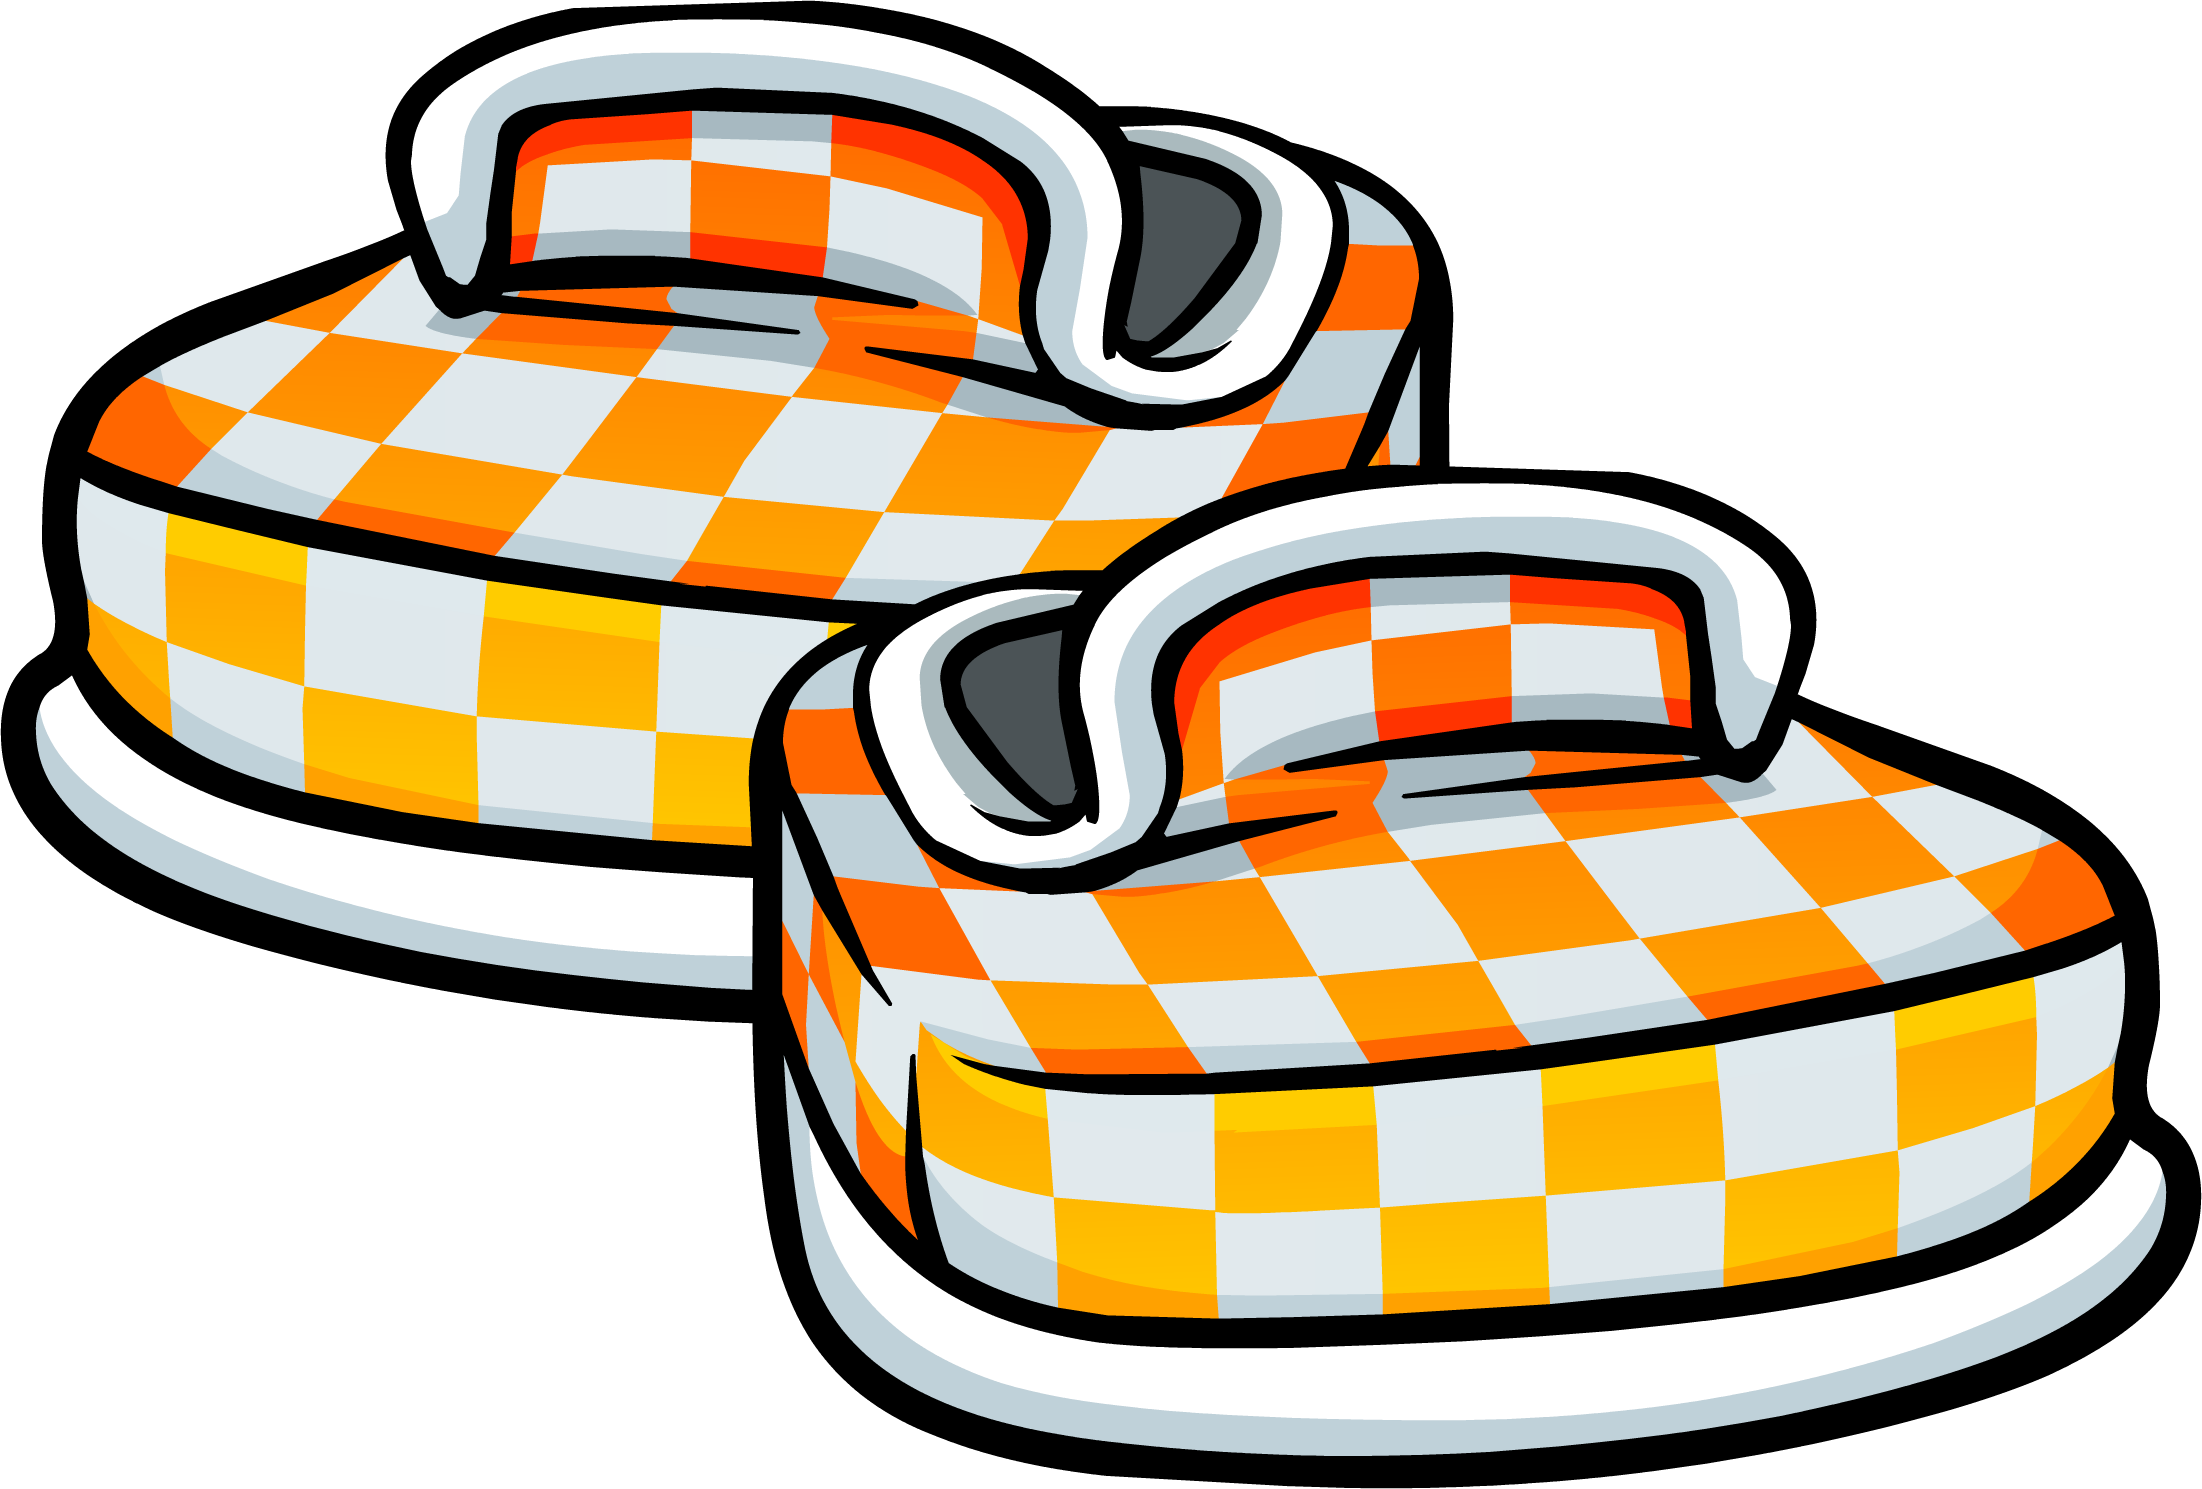 Orange Checkered Shoes